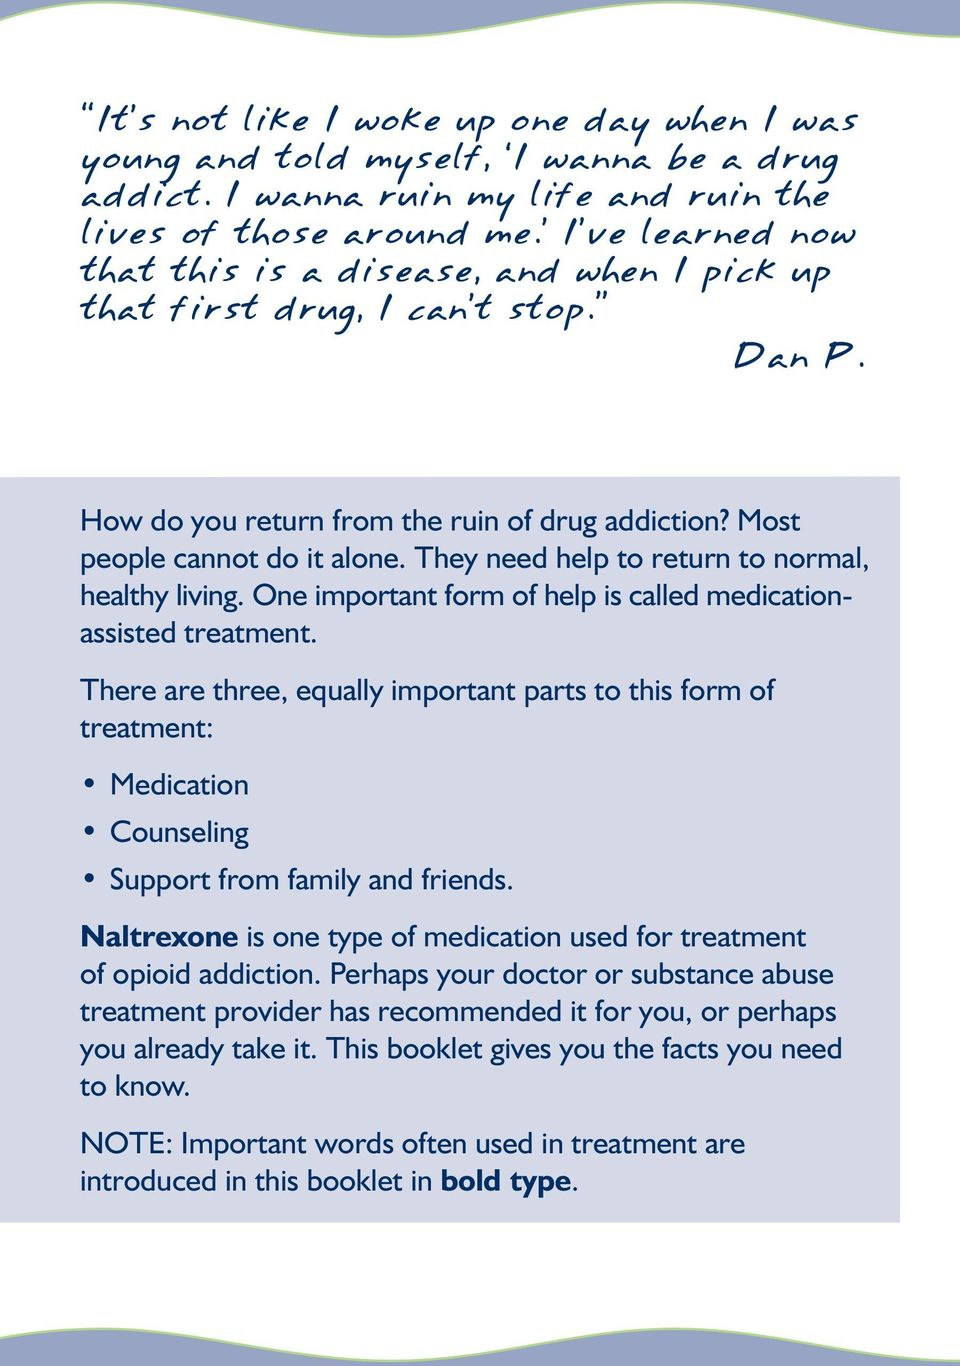 They need help to return to normal, healthy living. One important form of help is called medicationassisted treatment.